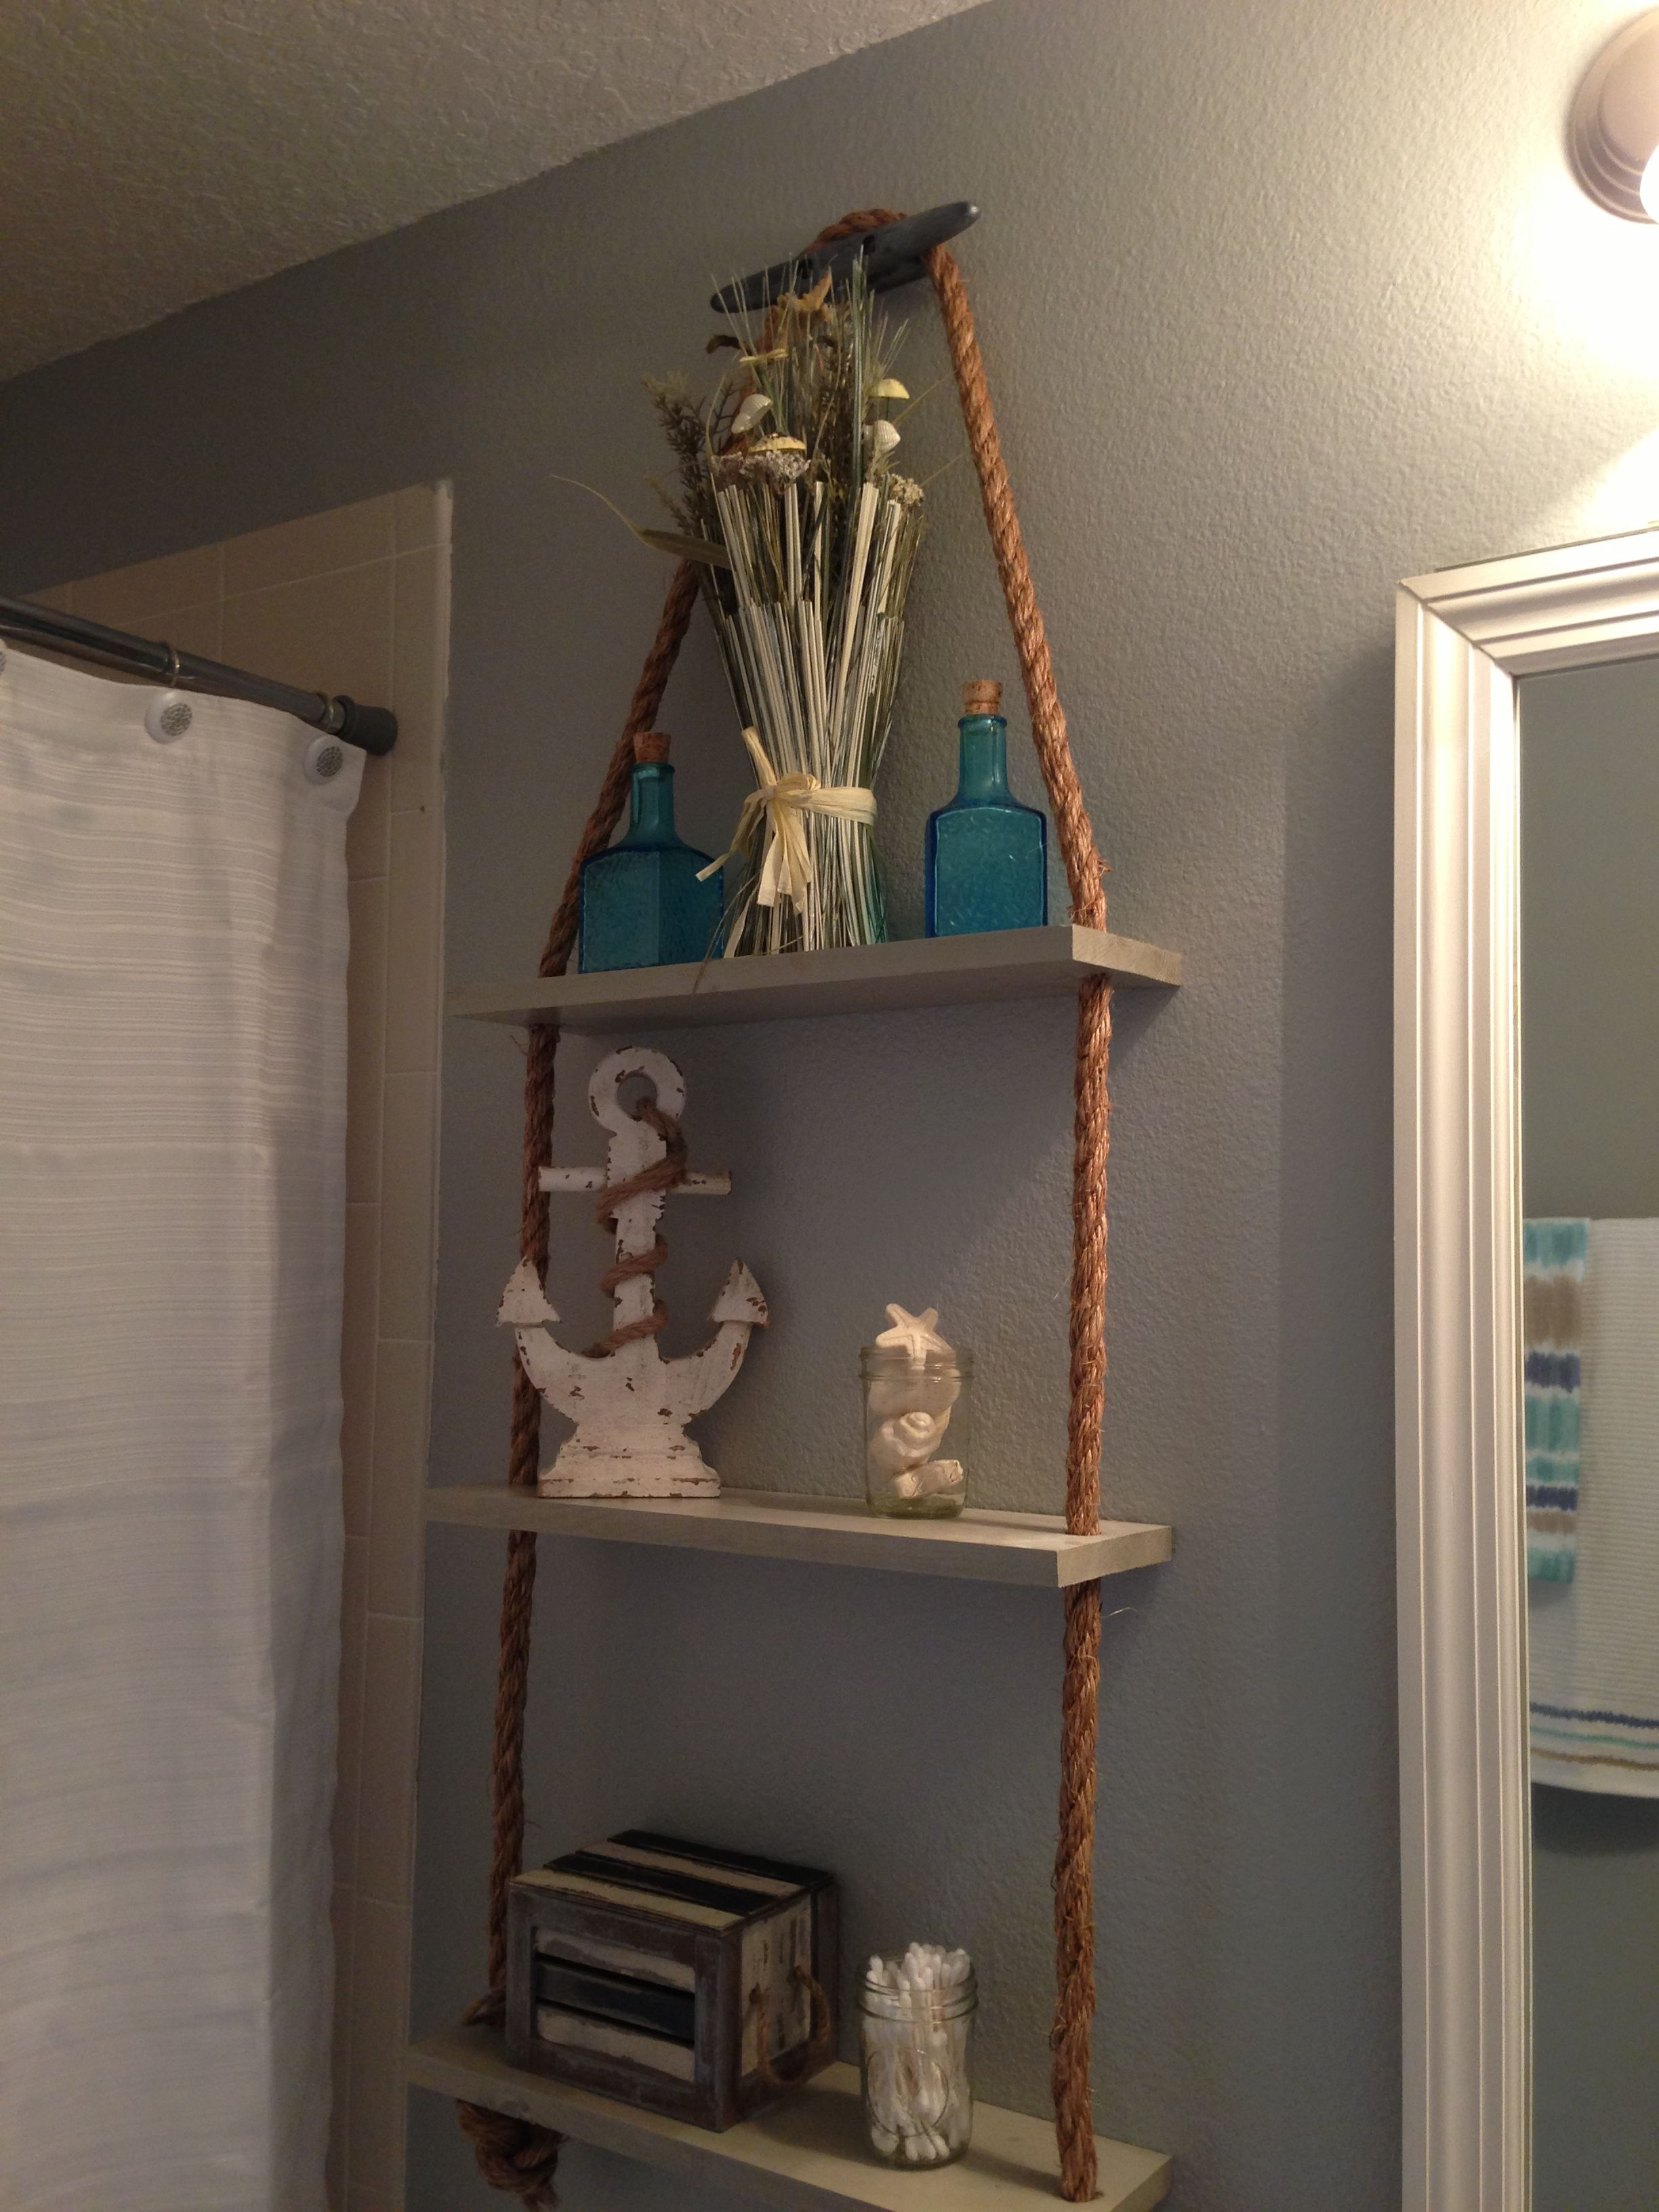 Diy Cabana Curtains Diy Nautical Shelf Cabana Ideas Pinterest Shelves